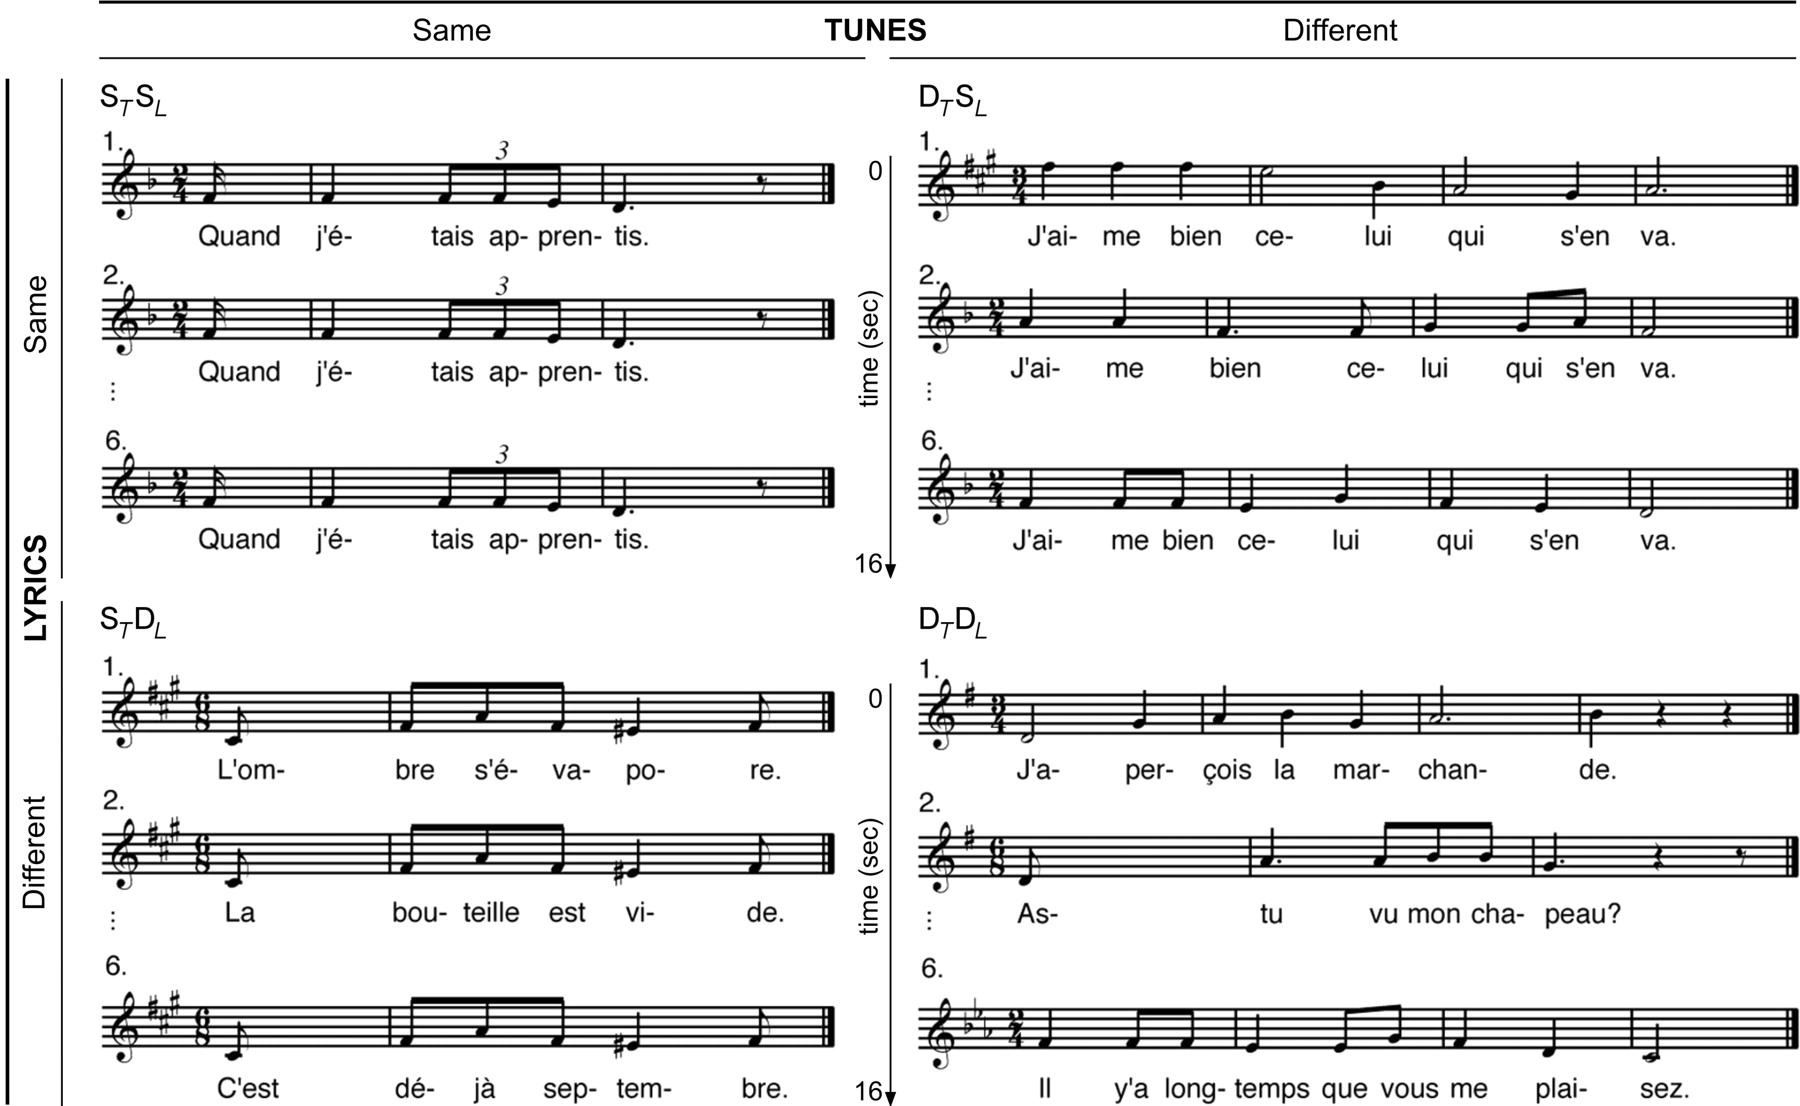 The Relationship of Lyrics and Tunes in the Processing of